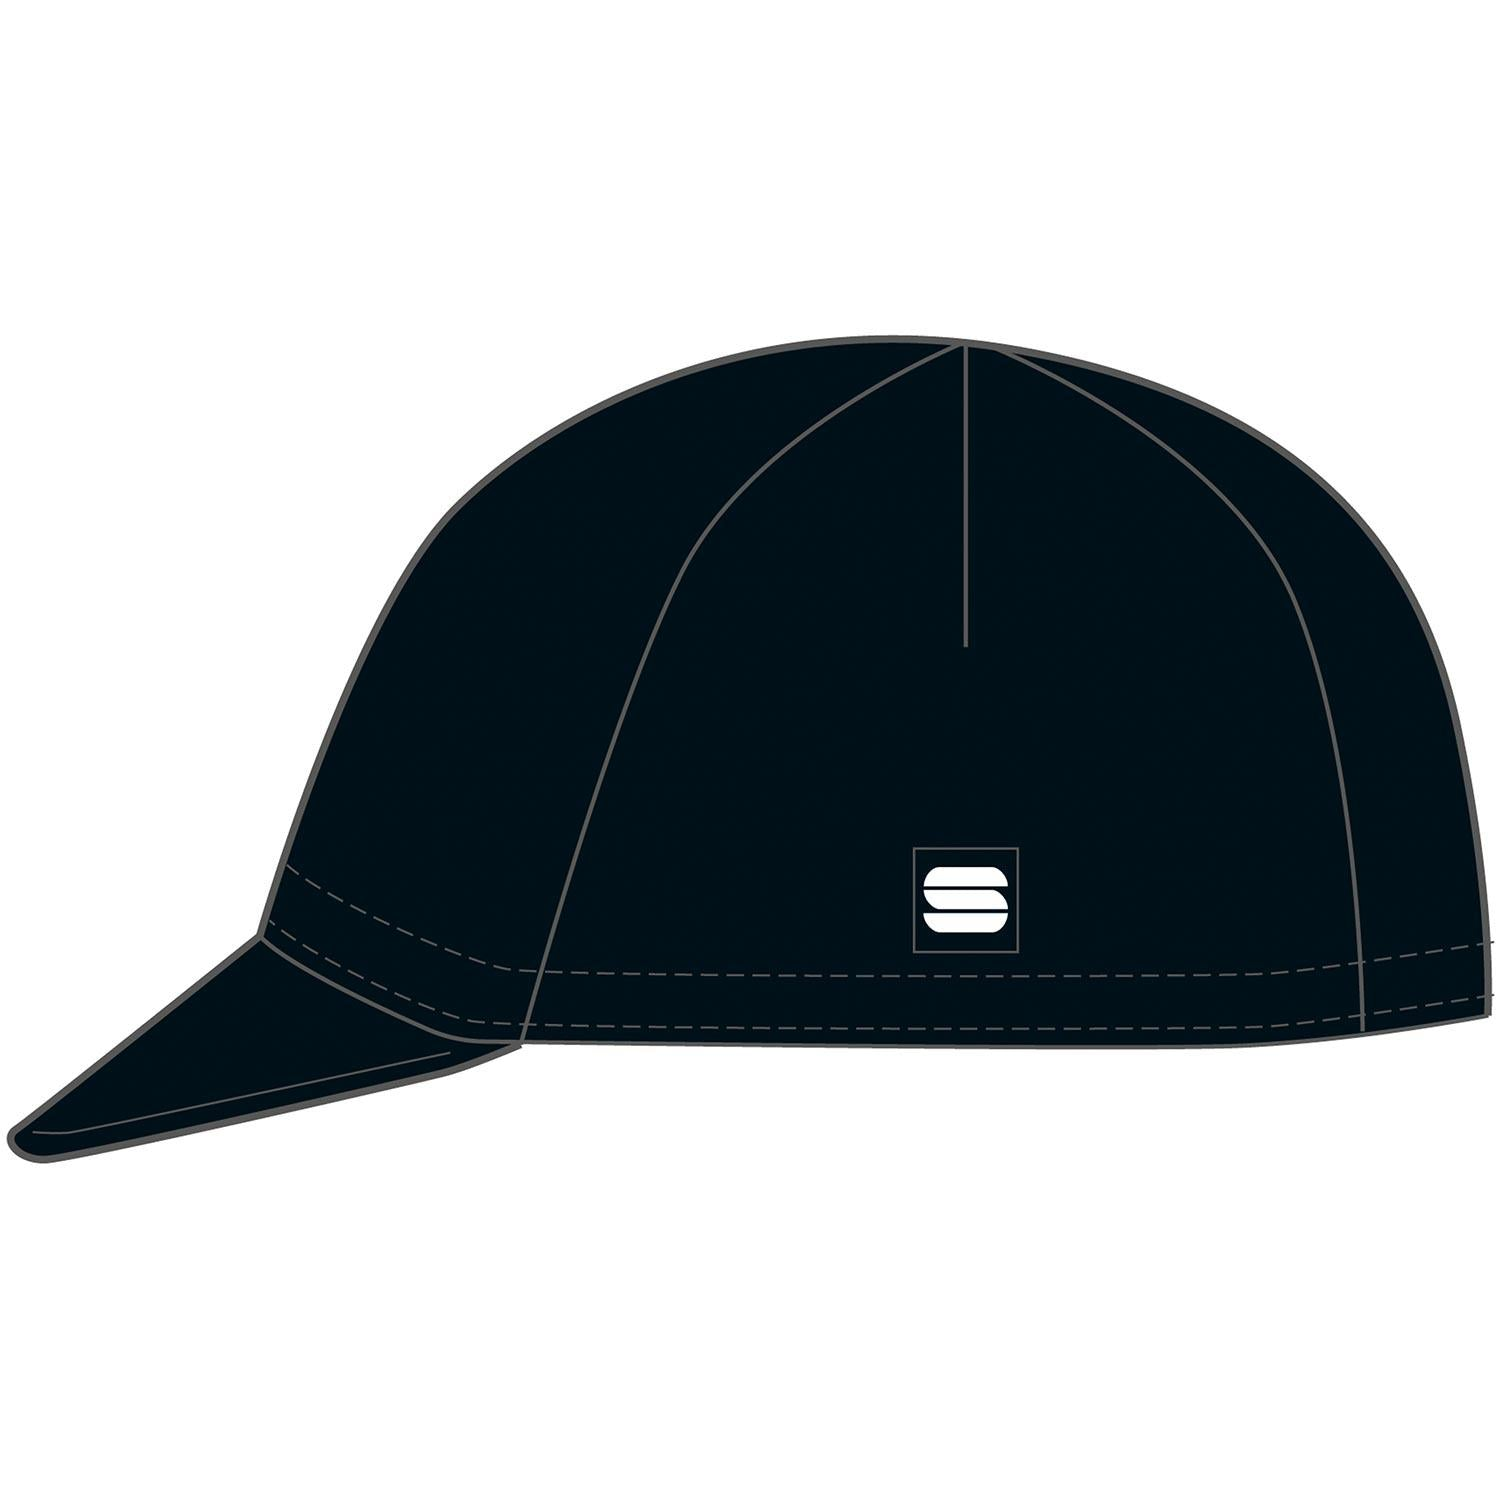 Sportful-Sportful Matchy Cycling Cap-Black-UNI-SF210380028-saddleback-elite-performance-cycling